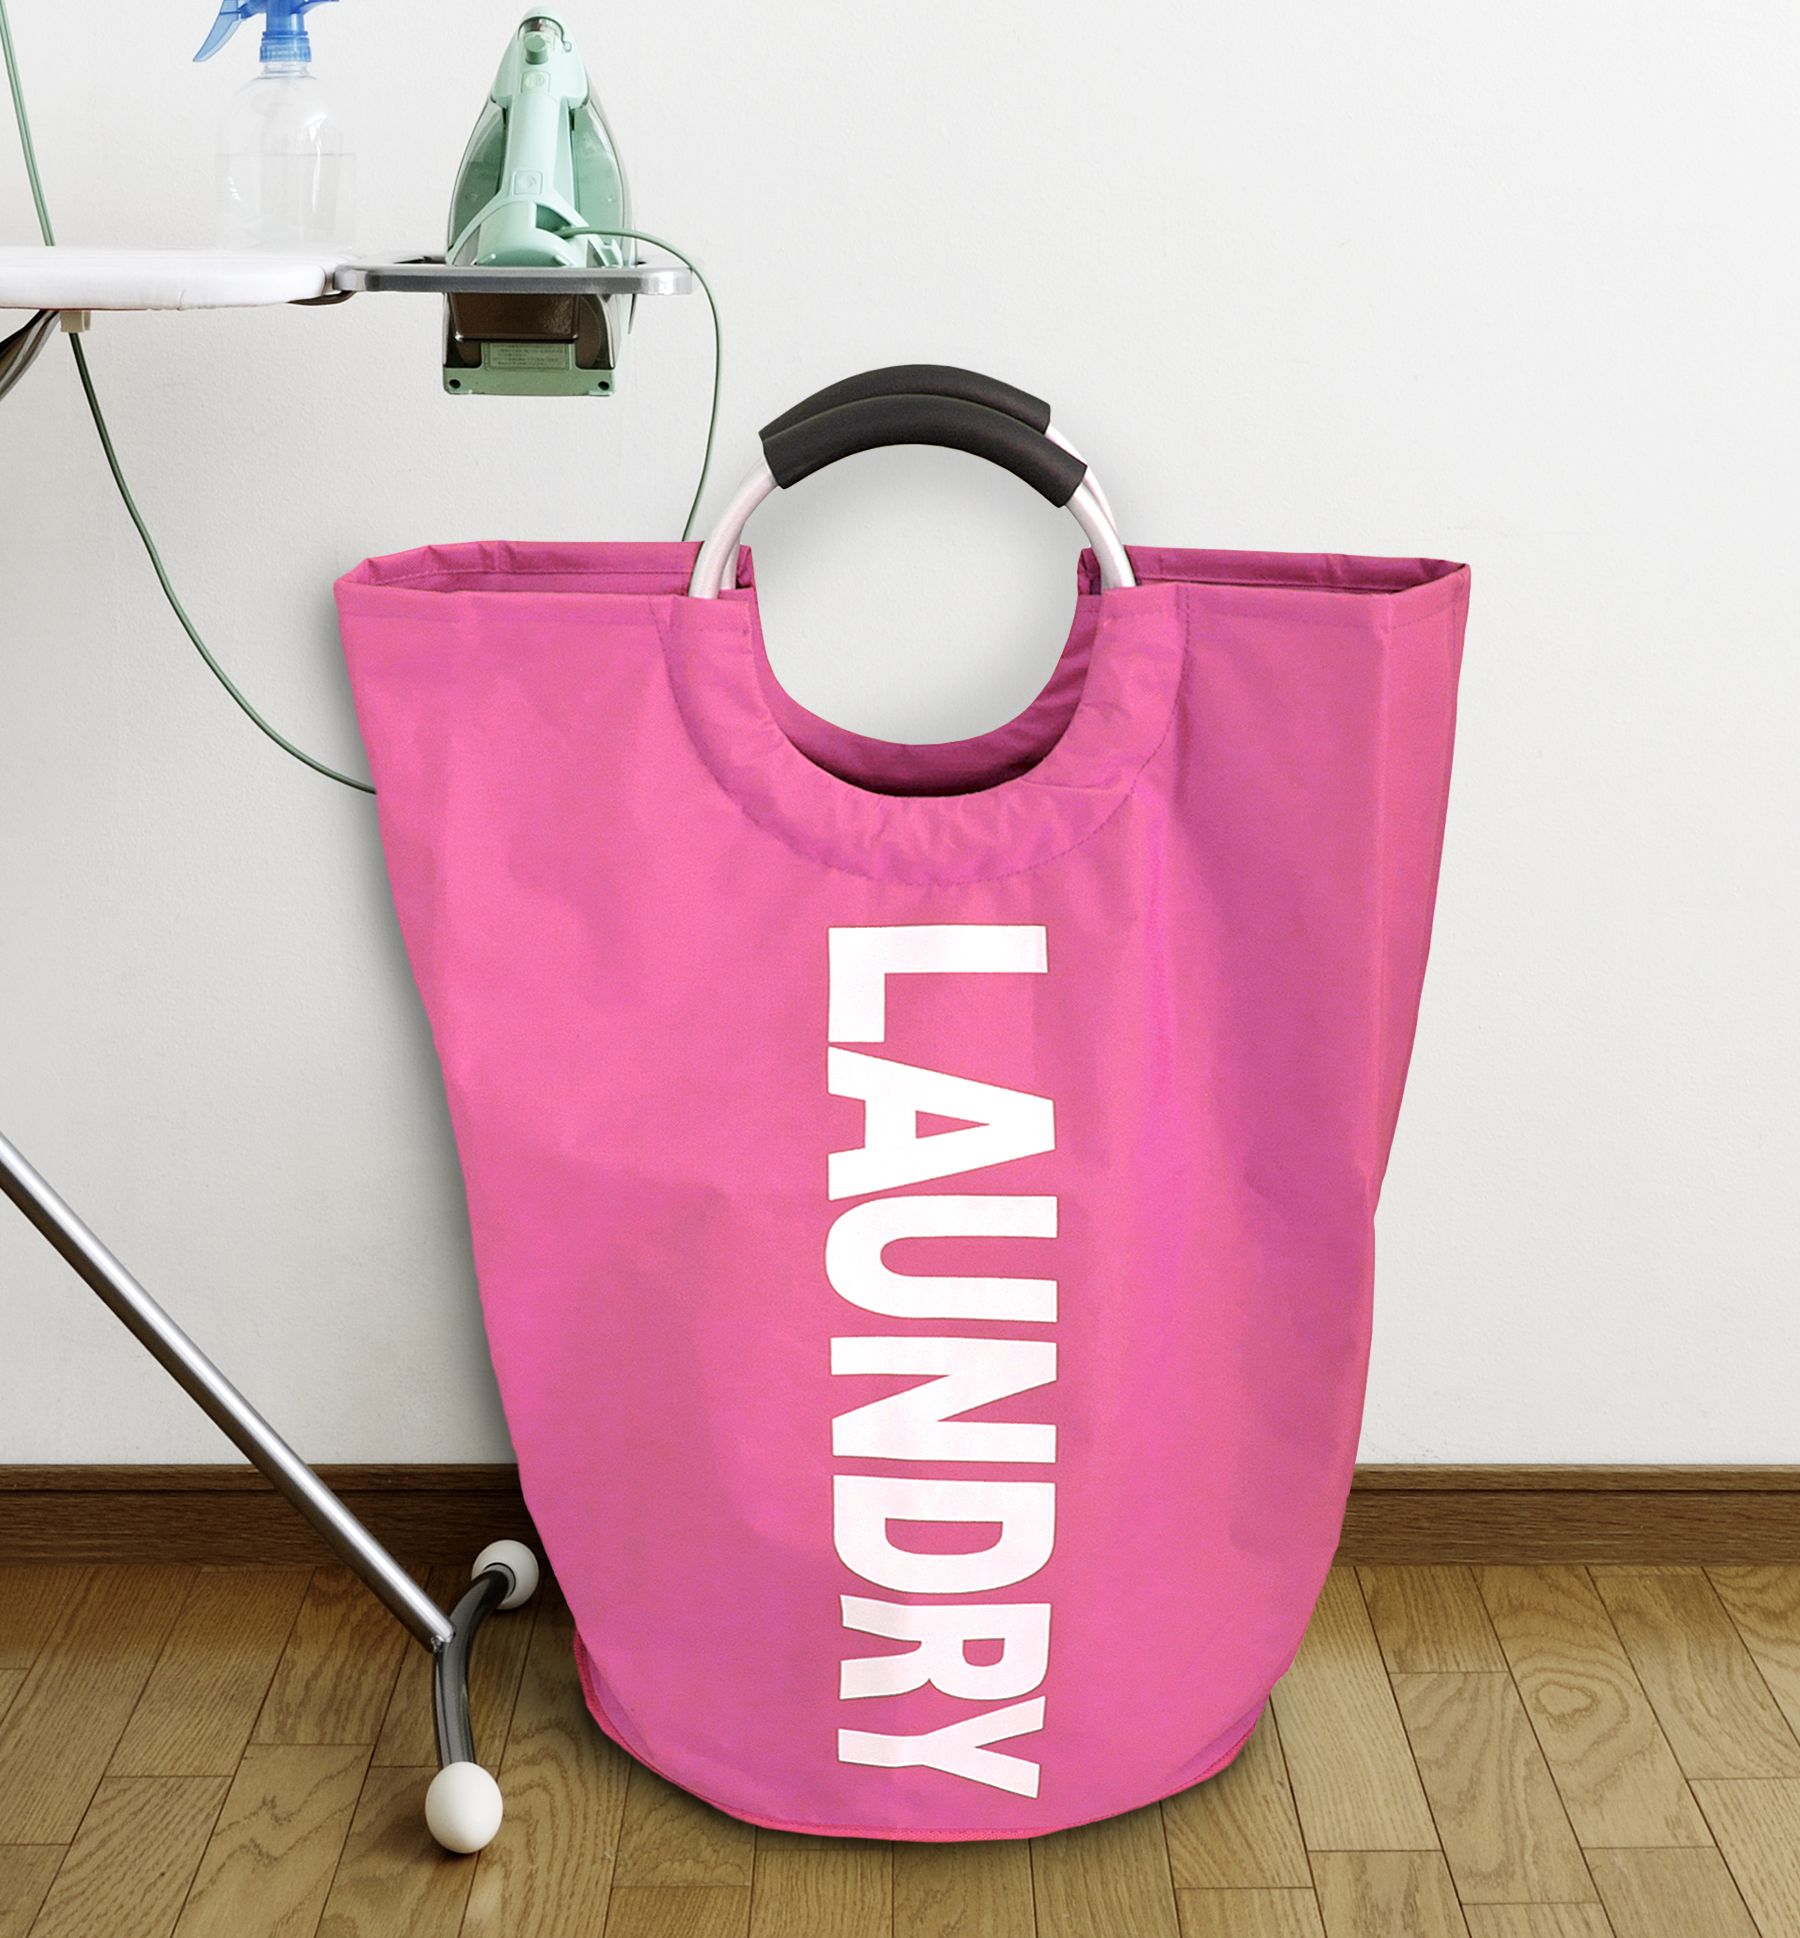 Splash Home Portable Hamper Bag Handles, Easily Foldable Collapsible Large Laundry Storage Basket, 20 x 13 x 21, Pink